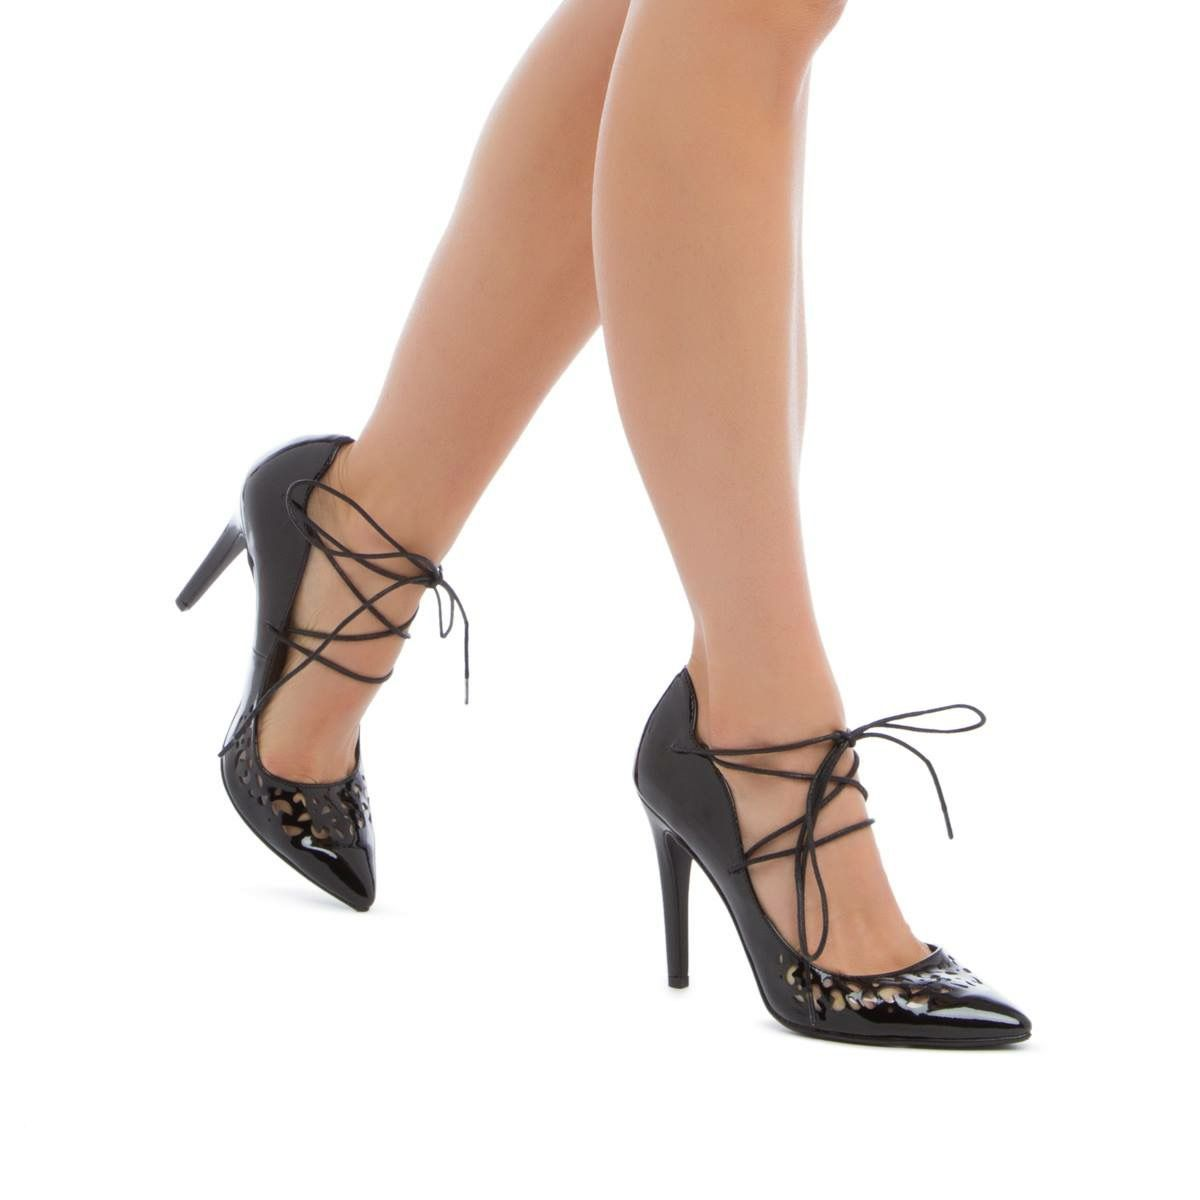 Womens high shoes: with what to combine